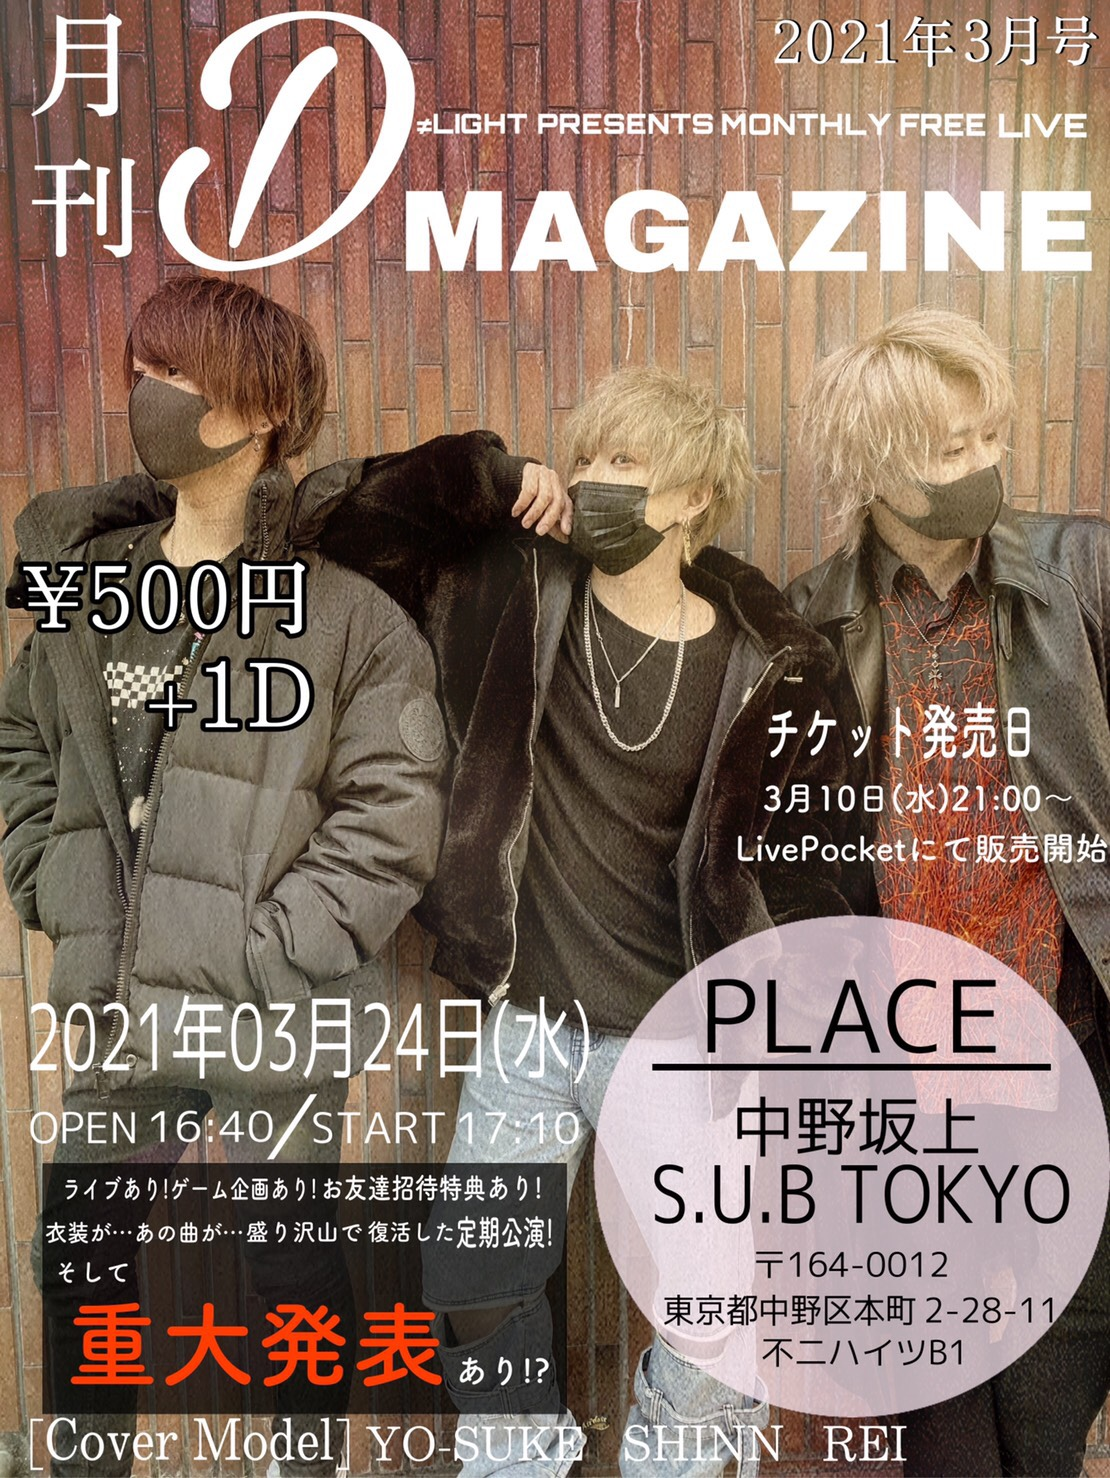 D≠LIGHT PRESENTS MONTHLY FREE LIVE「D MAGAGINE 3月号」